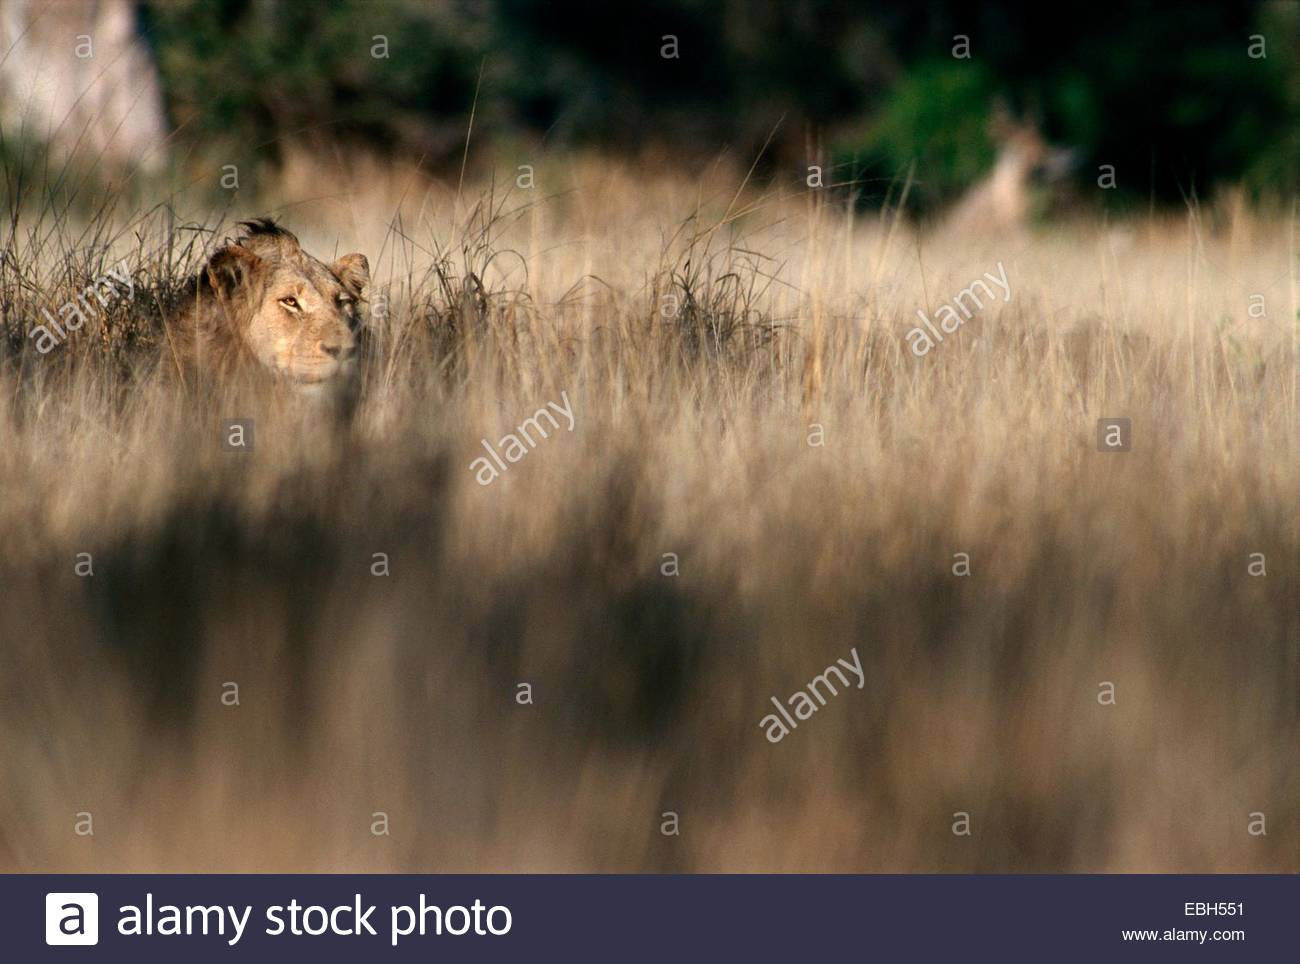 lion (Panthera leo), hunting in high grass. Stock Photo